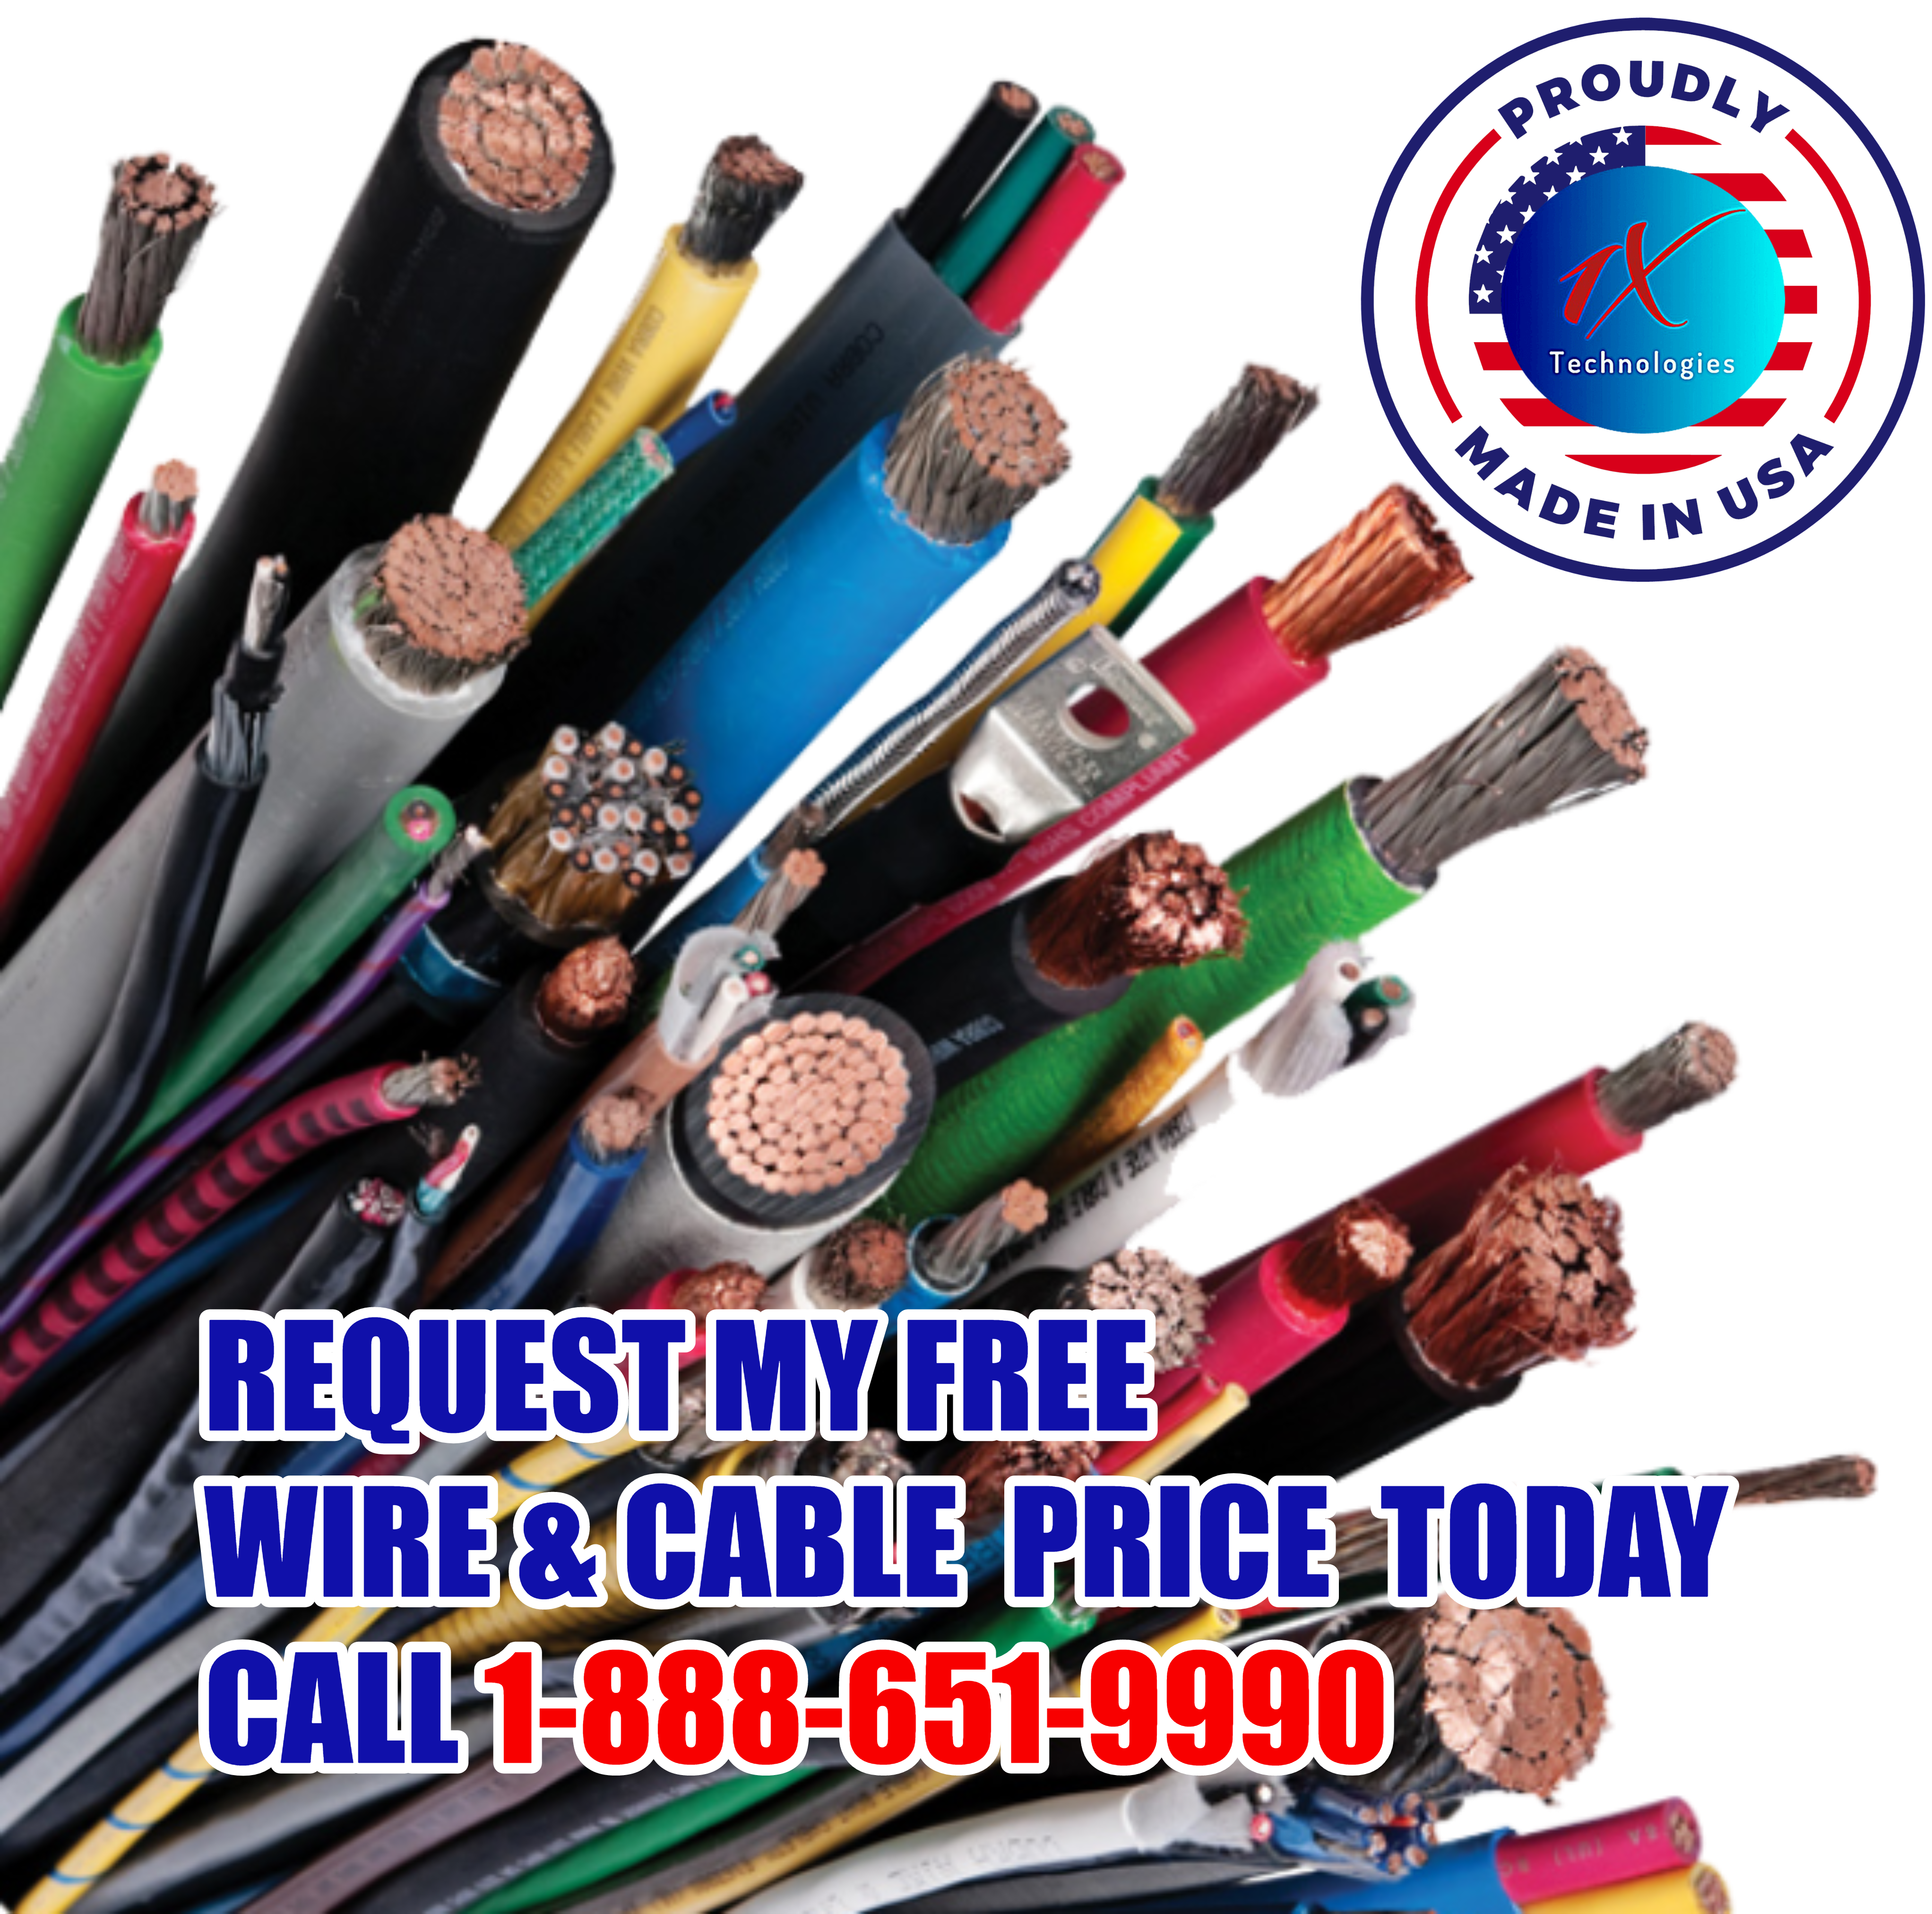 Request My Free Wire Cable Price Today In 2020 Cable Companies Technology Cable